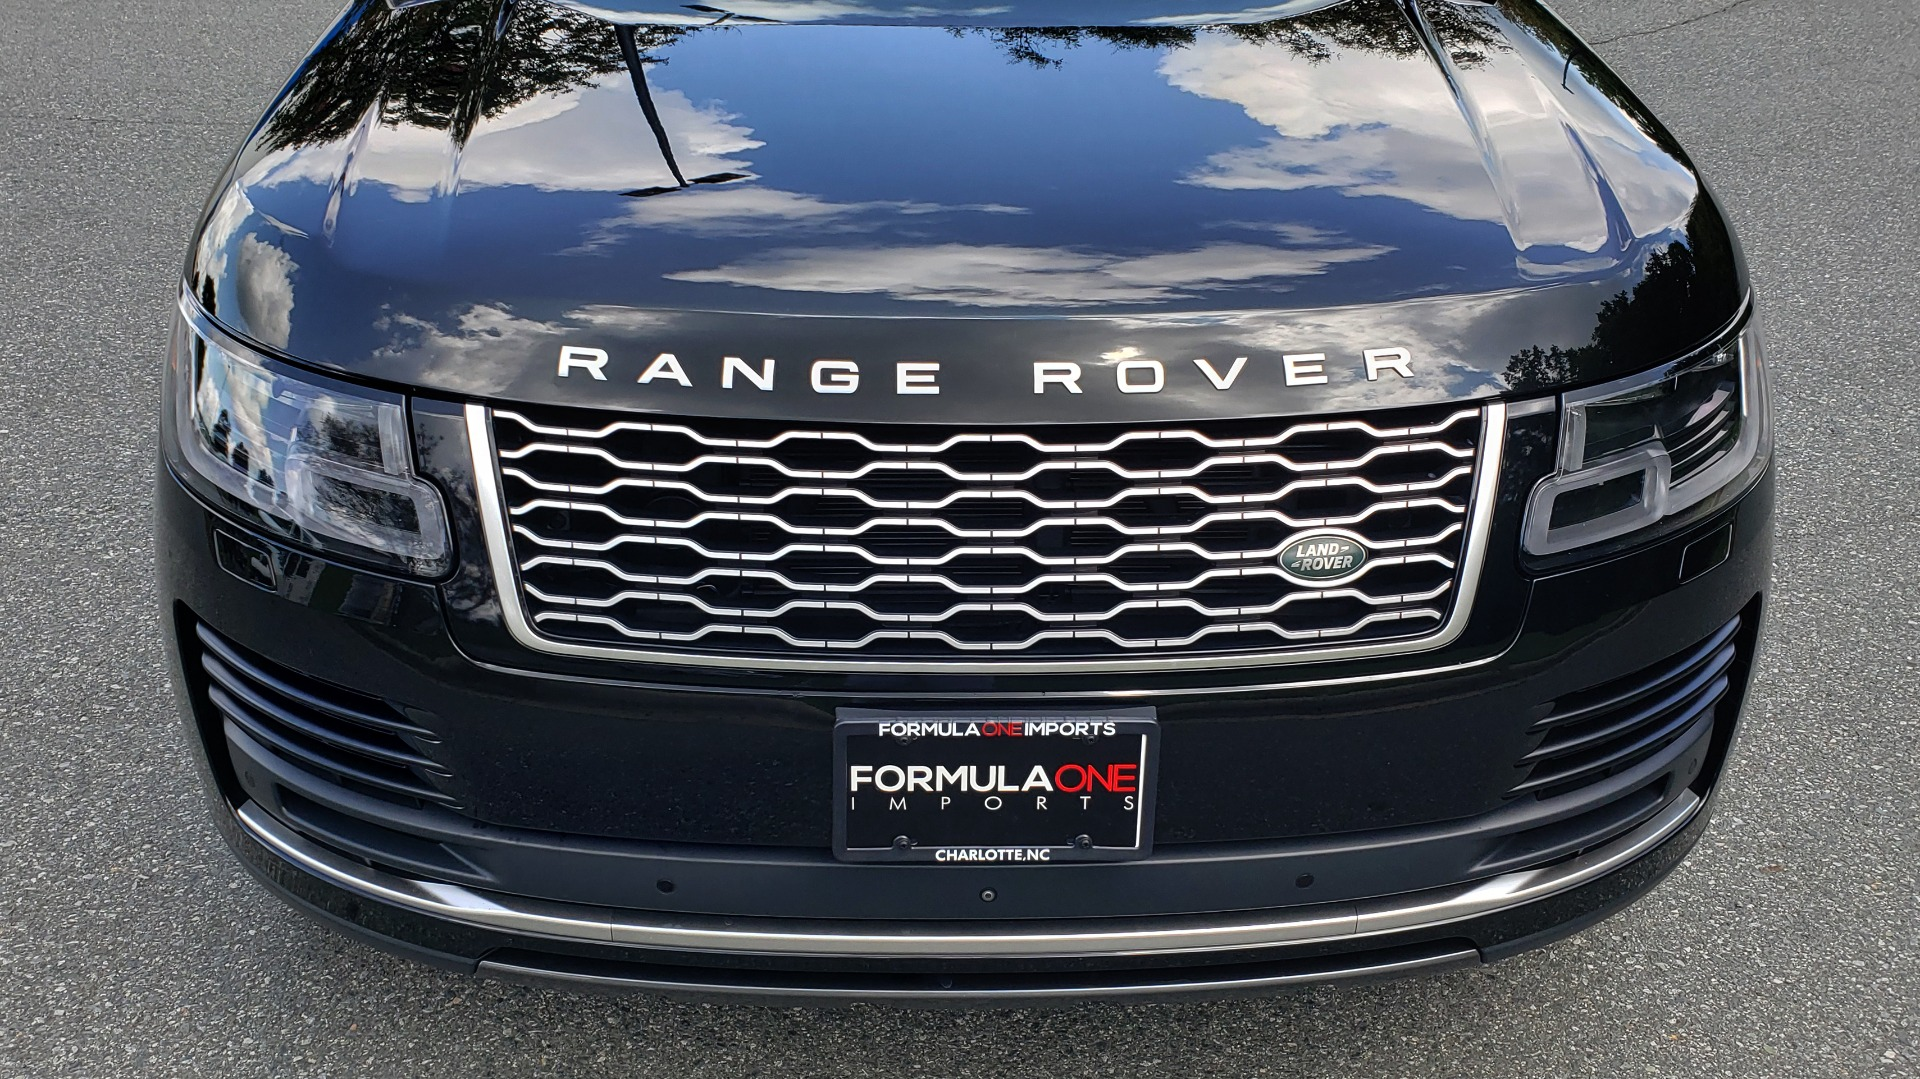 Used 2019 Land Rover RANGE ROVER SCV8 / NAV / PANO-ROOF / MERIDIAN / REARVIEW for sale Sold at Formula Imports in Charlotte NC 28227 20